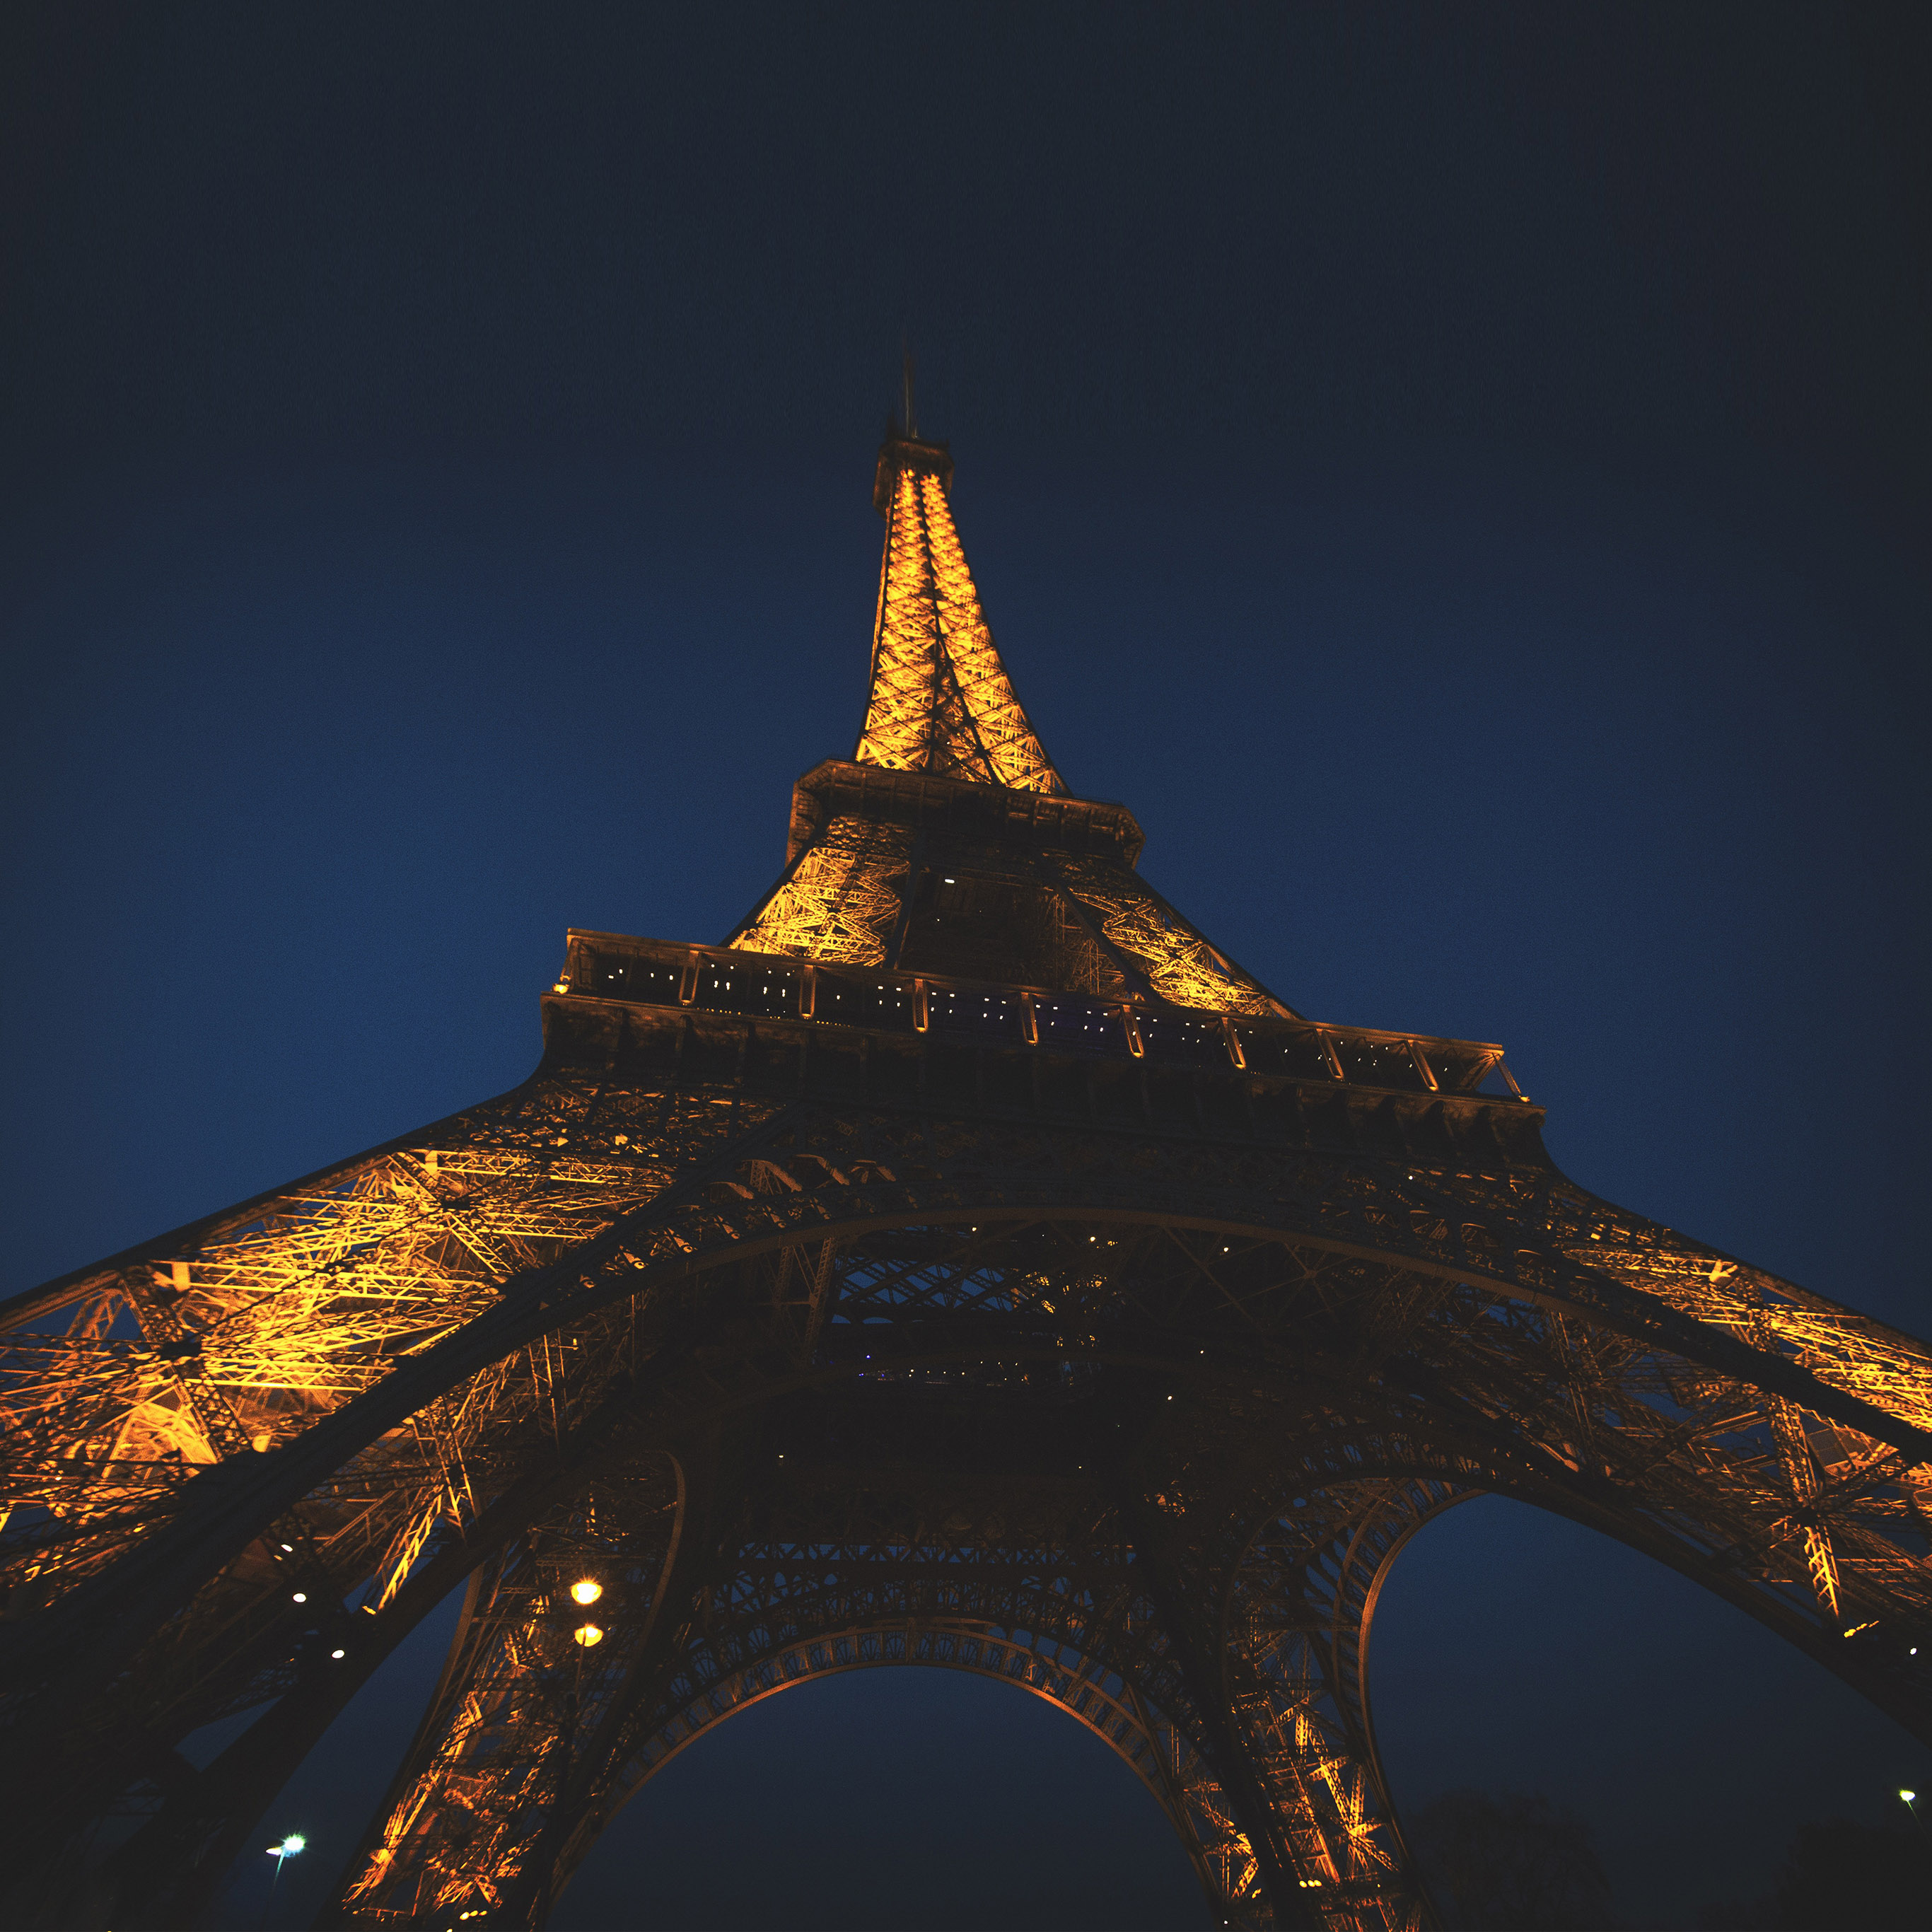 nh37-eiffel-tower-paris-france-tour-vacation-city-night-wallpaper